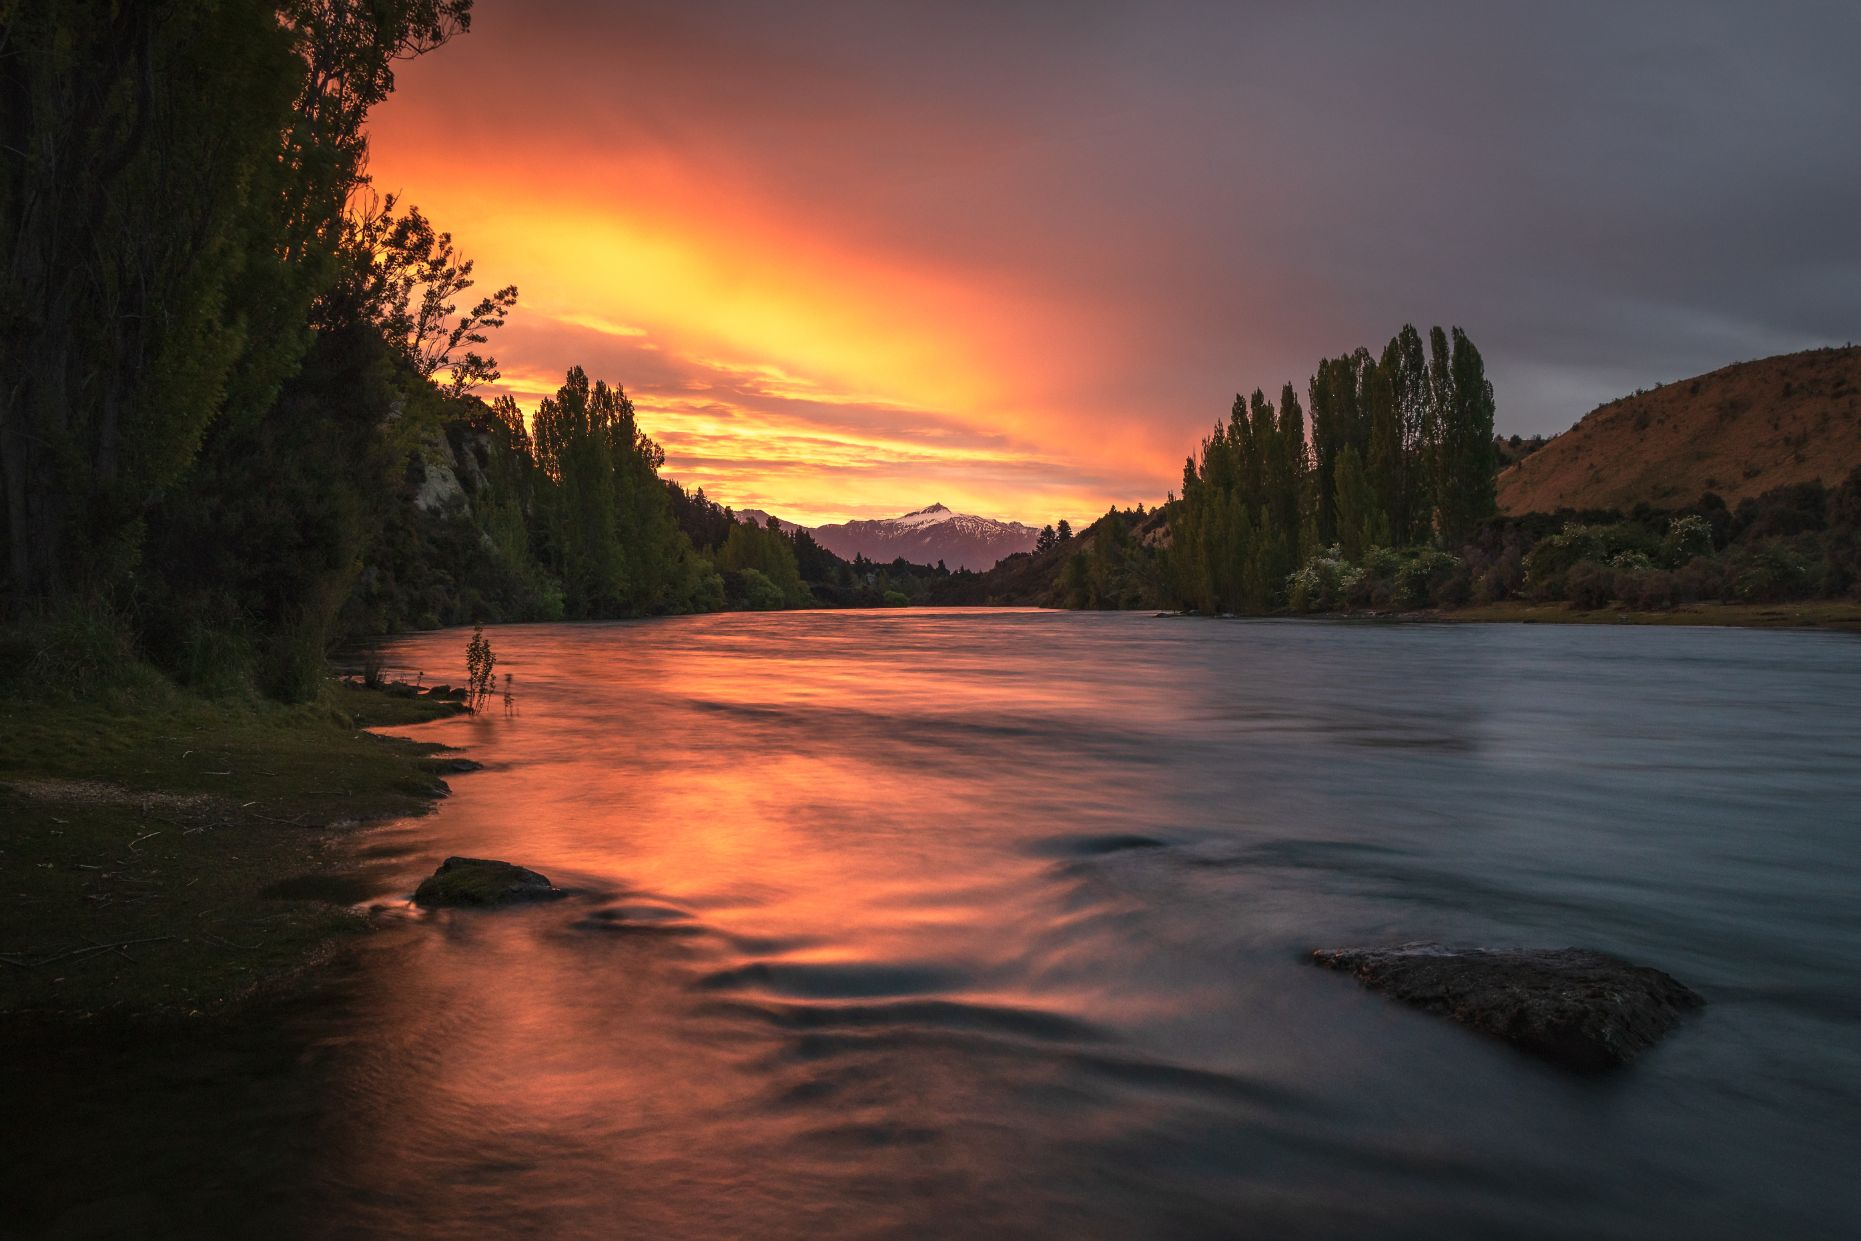 Our favourite thing to do in Wanaka is head to the water and watch the sunset